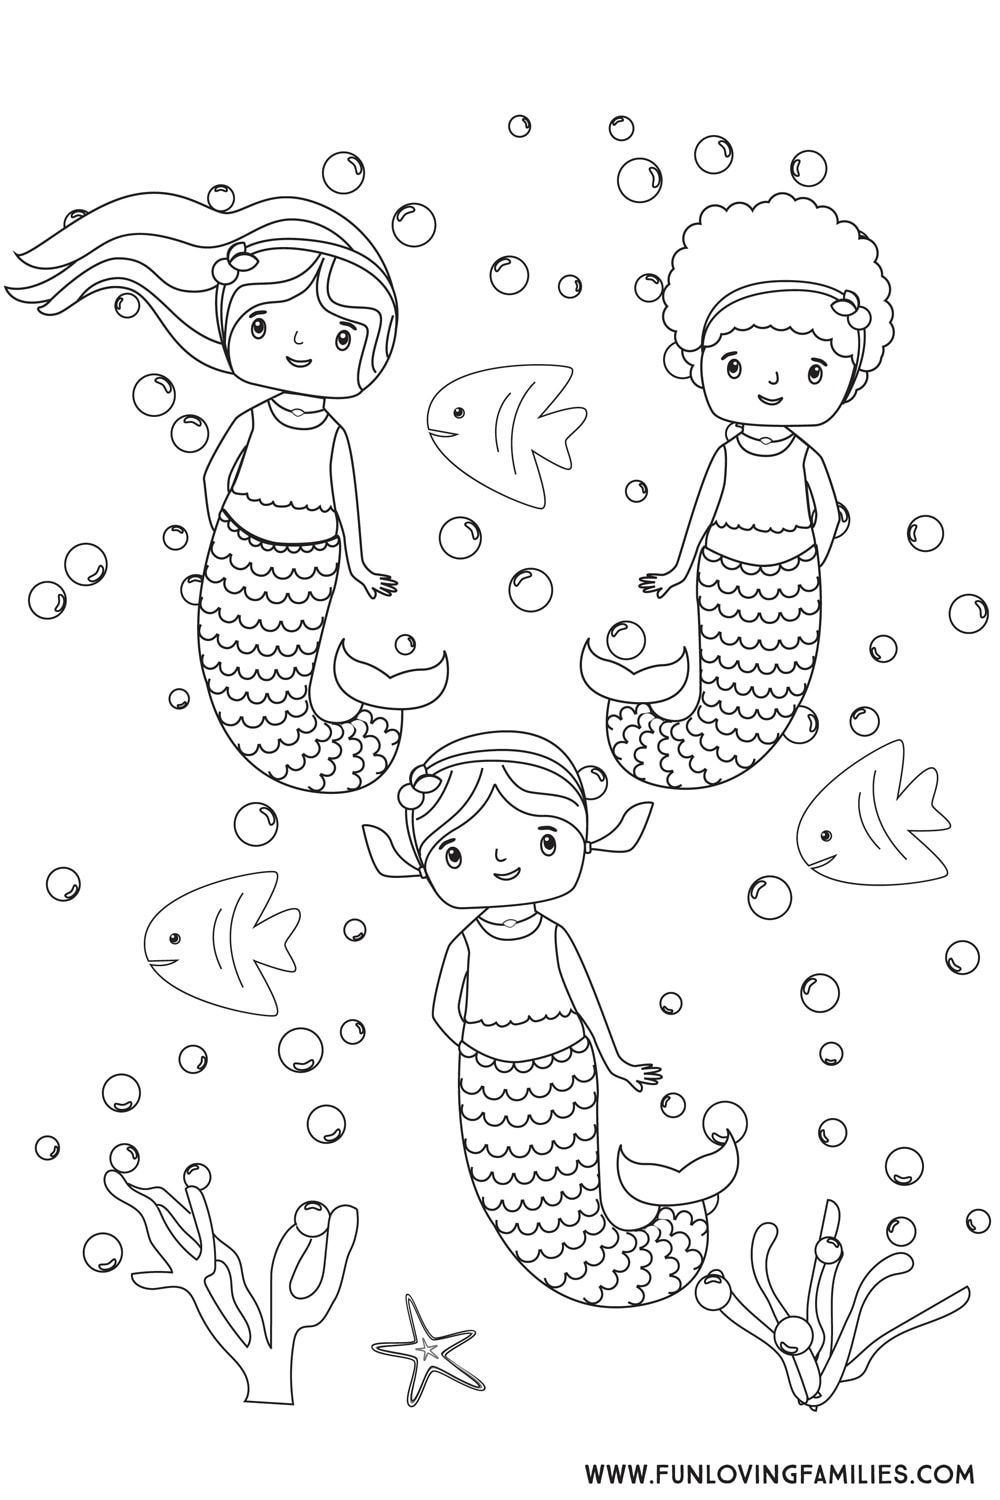 This Mermaid Coloring Set Is A Lifesaver On Rainy Days Download All Six Mermaid Coloring Pages Fo Mermaid Coloring Pages Mermaid Coloring Printables Free Kids